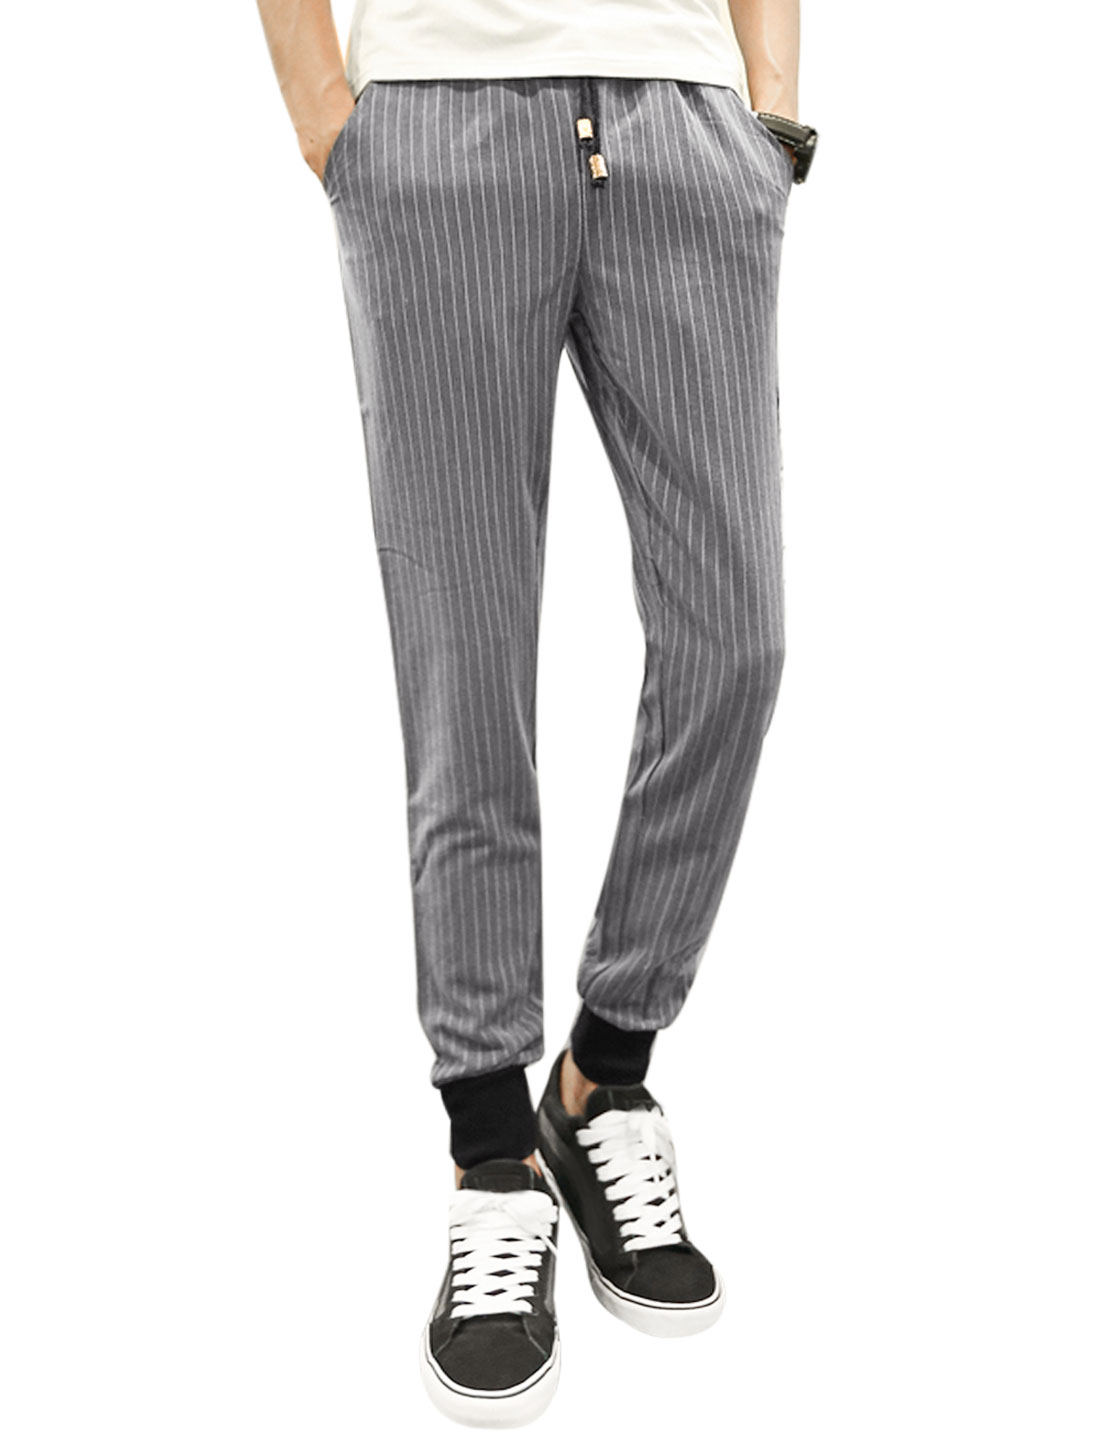 Men Ribbing Cuffs Stripes Tapered Casual Trousers Gray W30